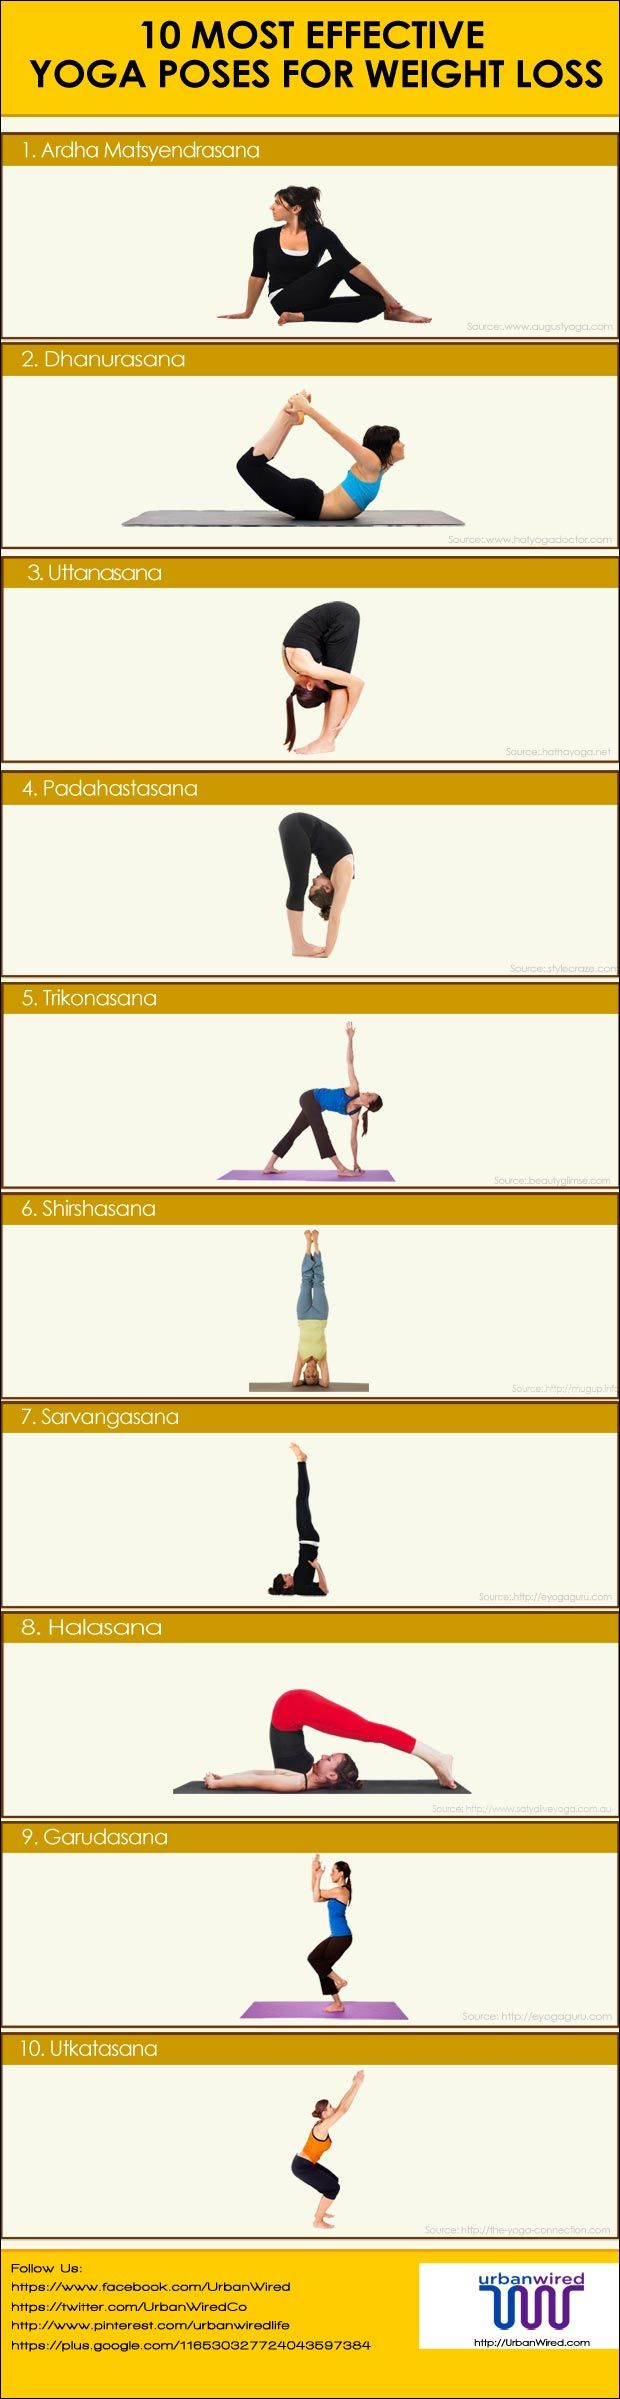 10 Most Effective Yoga Poses For Weight Loss.